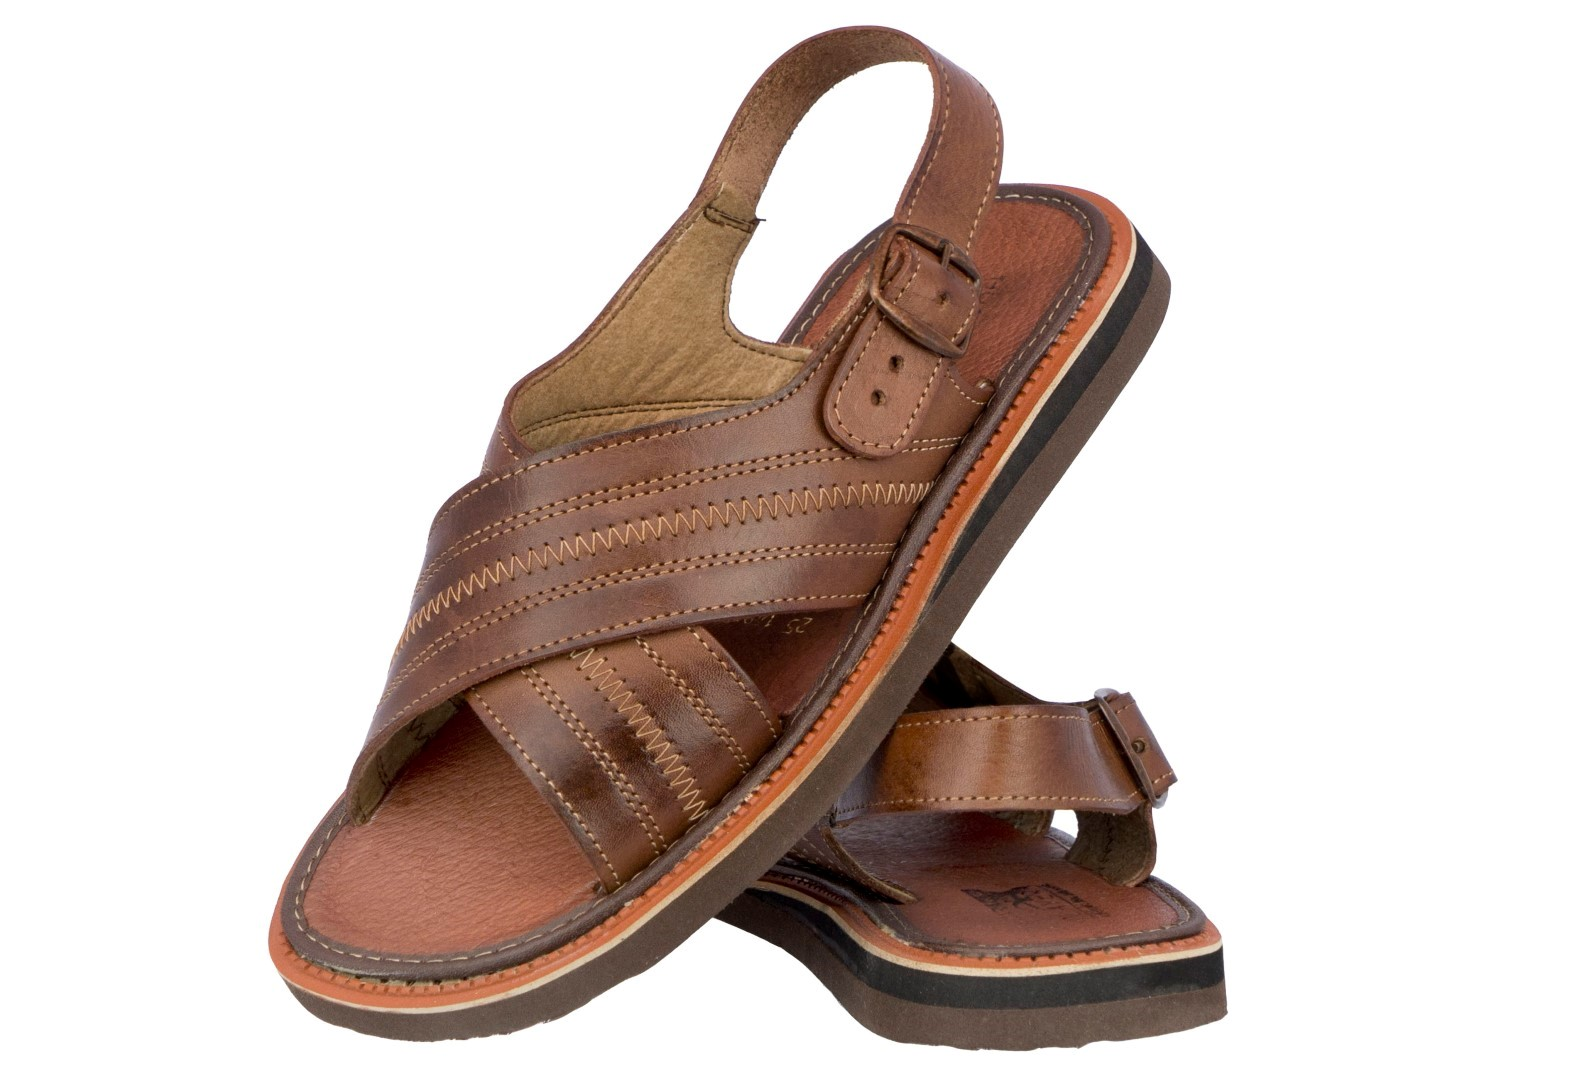 280978122c6622 Men s Genuine Leather Sandals Brown Stitched Straps Classic Mexican ...